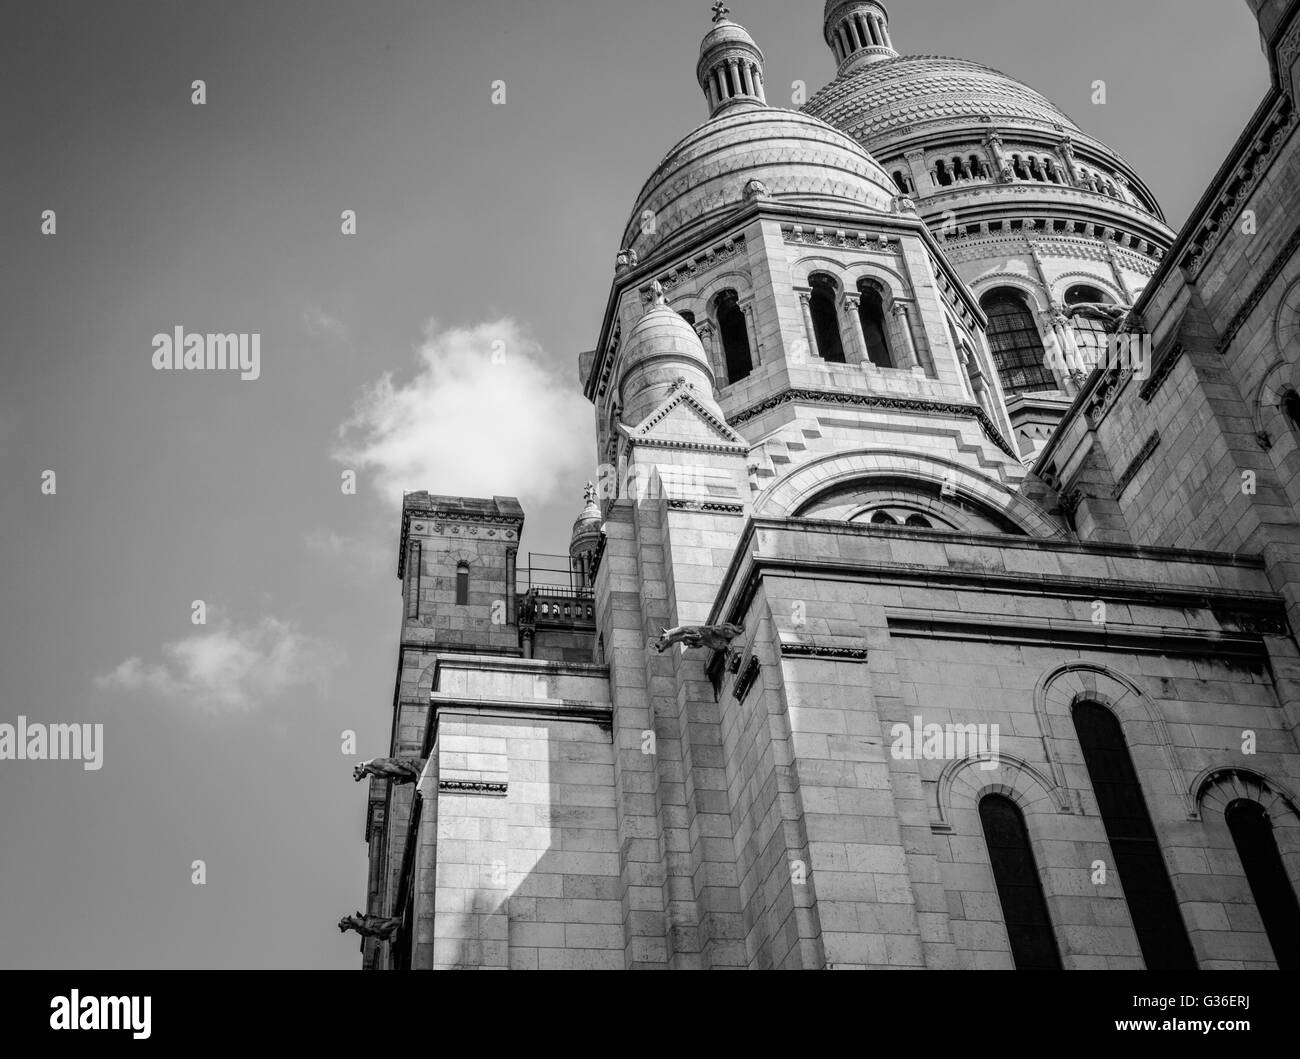 Sacre-Coeur Basilica in Paris is a major tourist attraction with its huge rounded domes and beautifully detailed Stock Photo